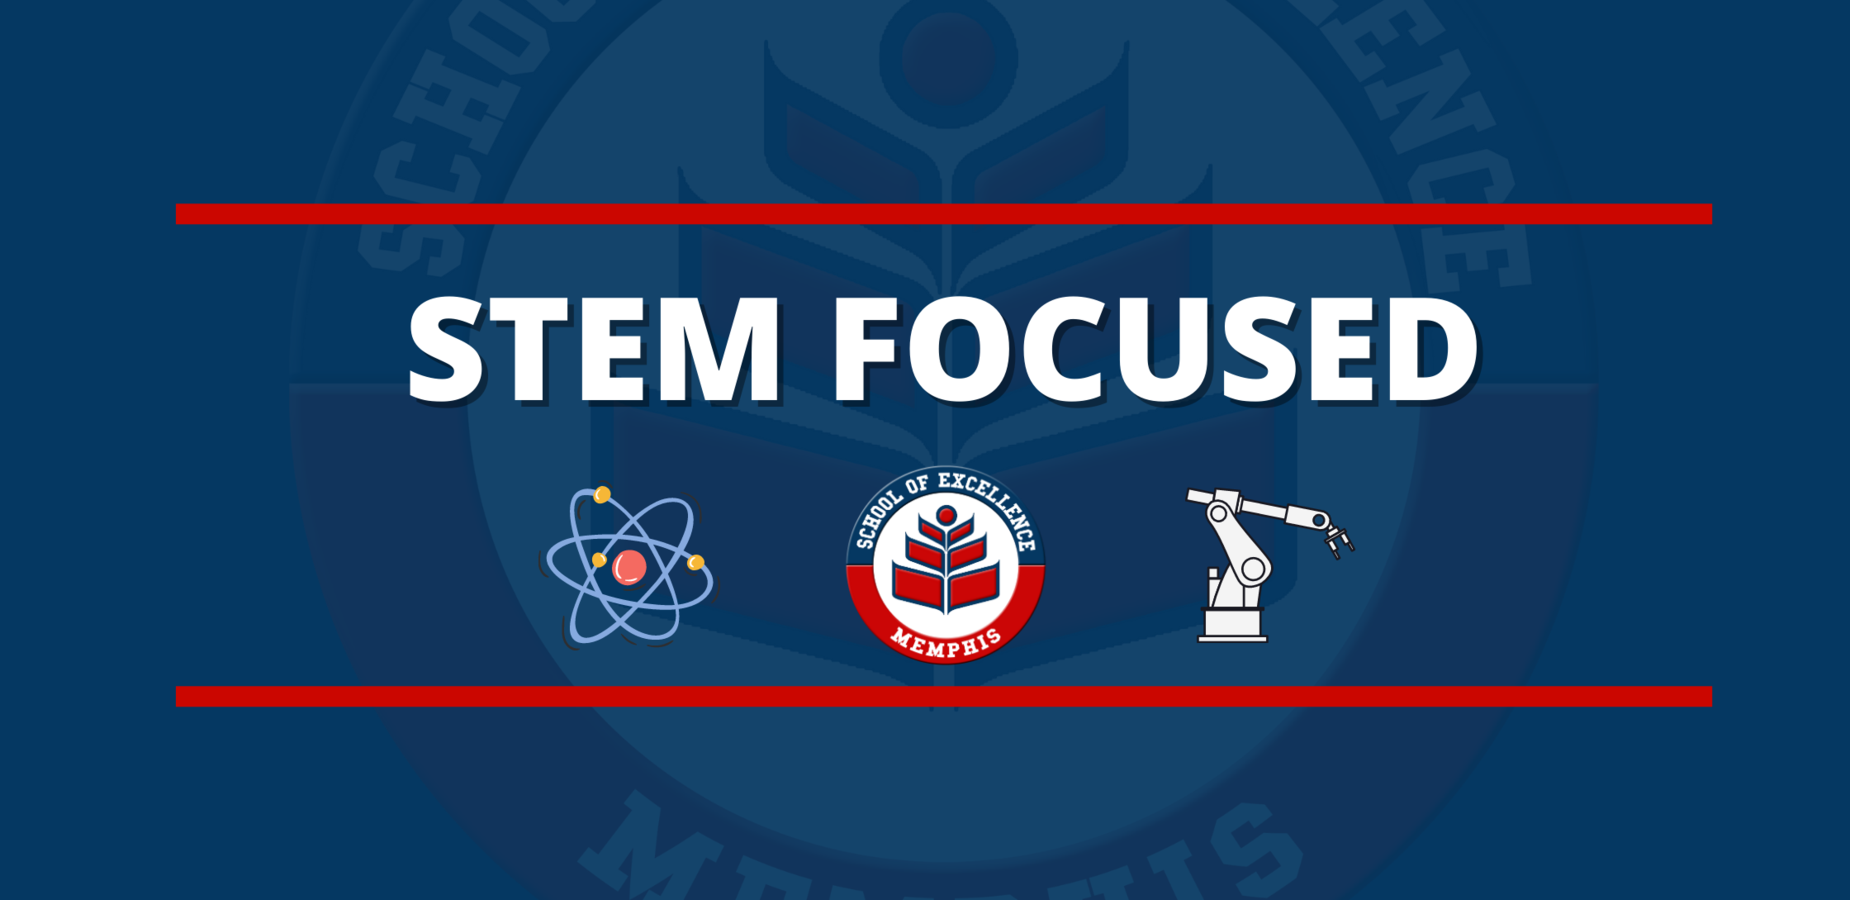 Stem Focused